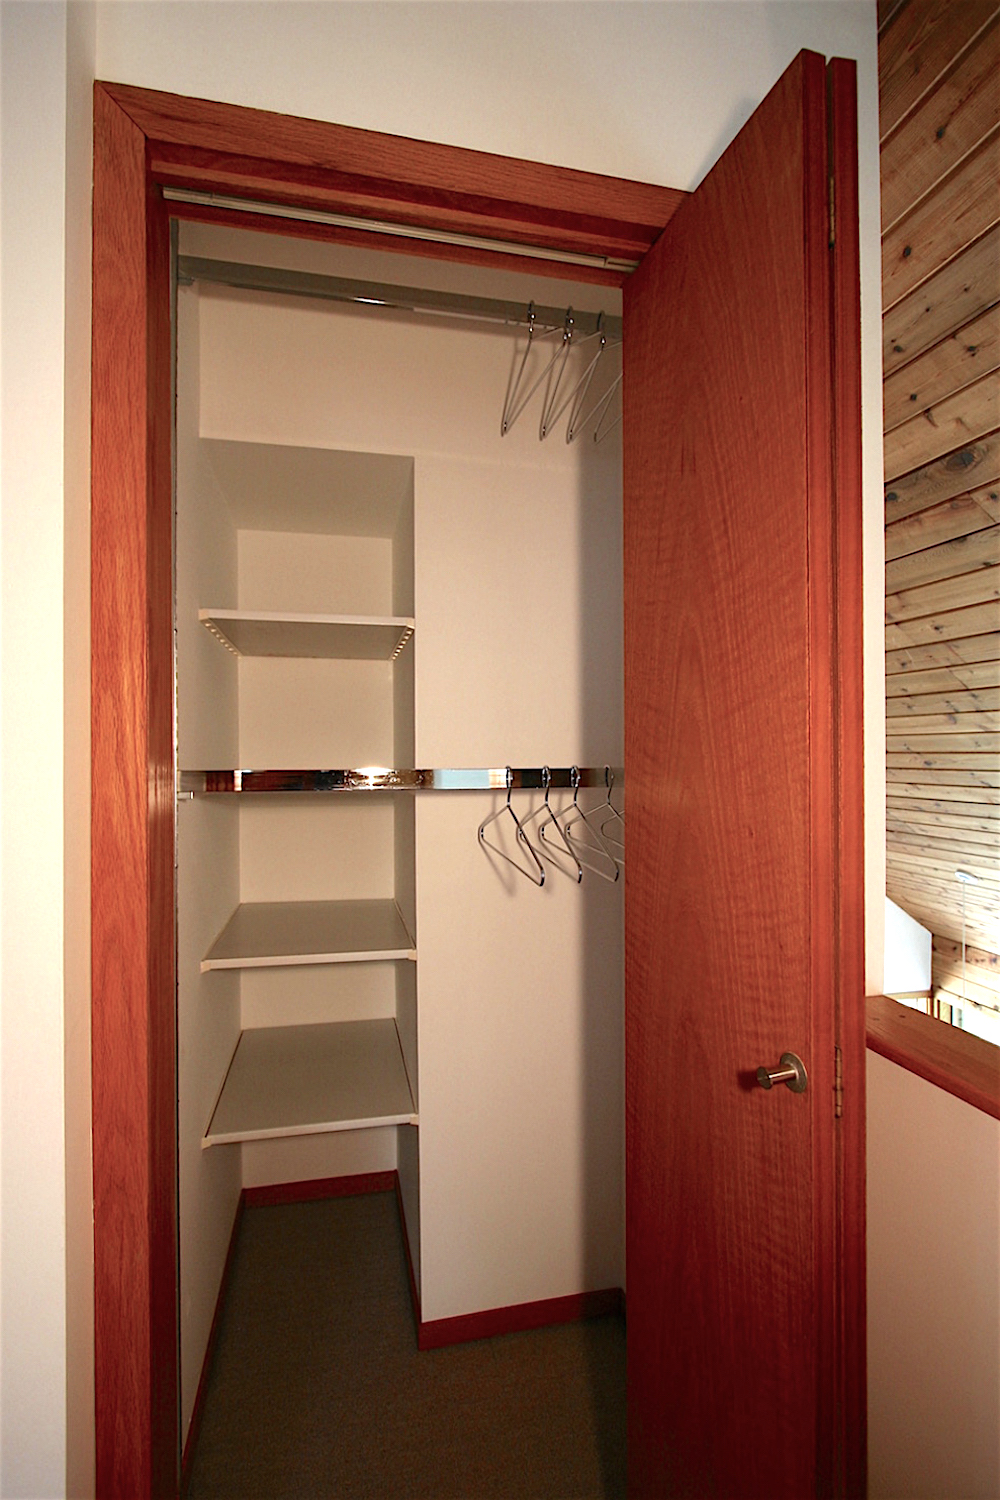 """All of the built-in closets in Solace House feature fully-adjustable commercial clothes rod hardware (making """"double-racking"""" such as shown here an easy option)."""